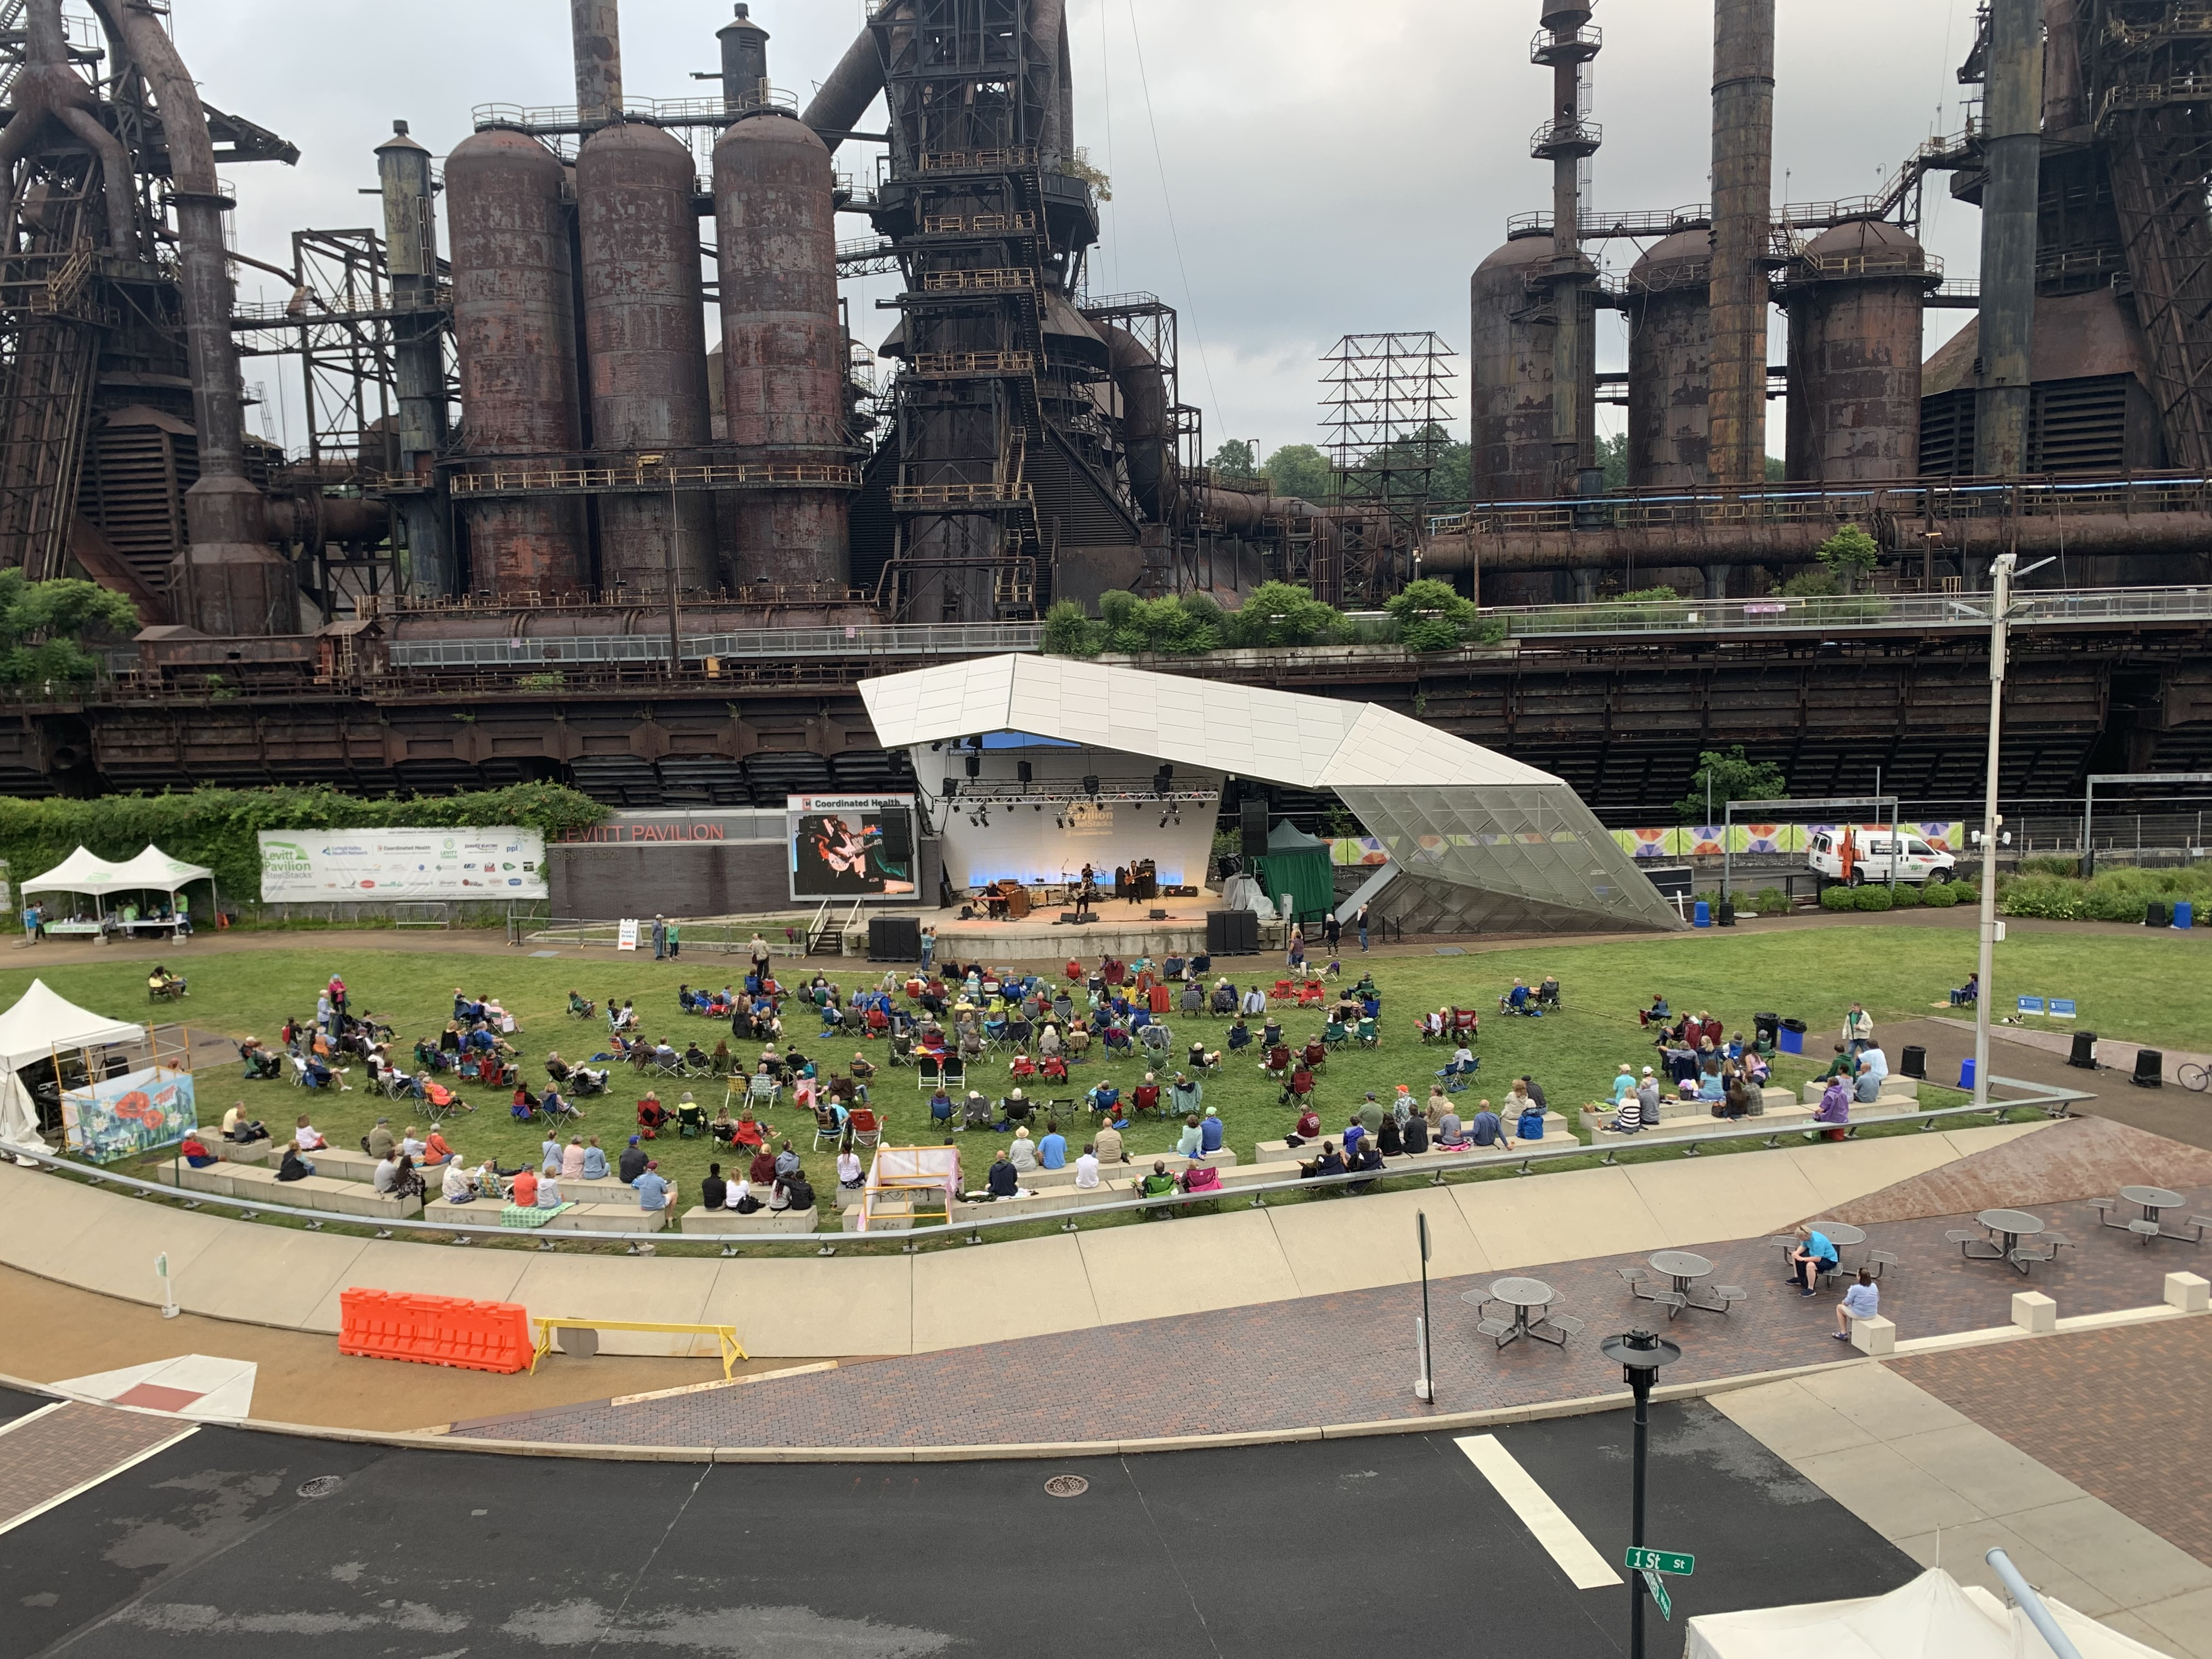 GRAMMY Award-winning blues sensation Ruthie Foster performs at Levitt Pavilion SteelStacks on a recent August evening at the base of the iconic blast furnaces that once powered Bethlehem Steel.